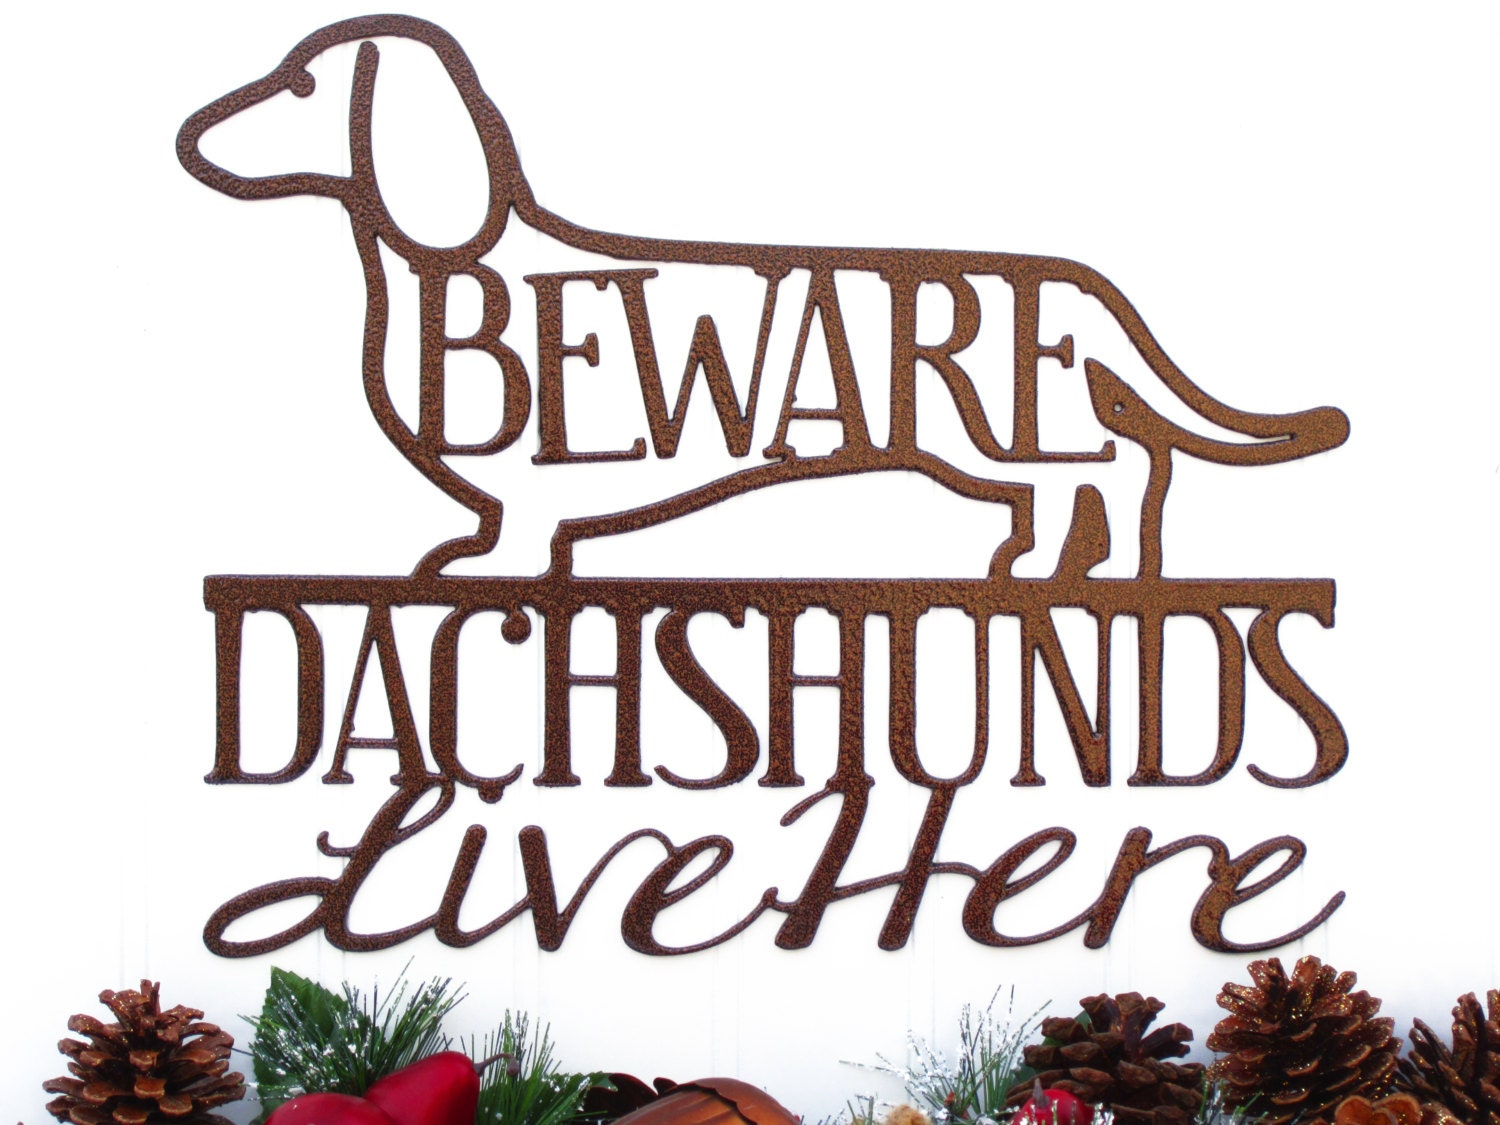 Copper Dachshund Metal Wall Art - Weiner Dogs, Dachshunds, Door Signs, Dachshund Gifts, Toy Dogs, Wall Art, Dog Breeds, Dogs, Signage, Signs - RefinedInspirations